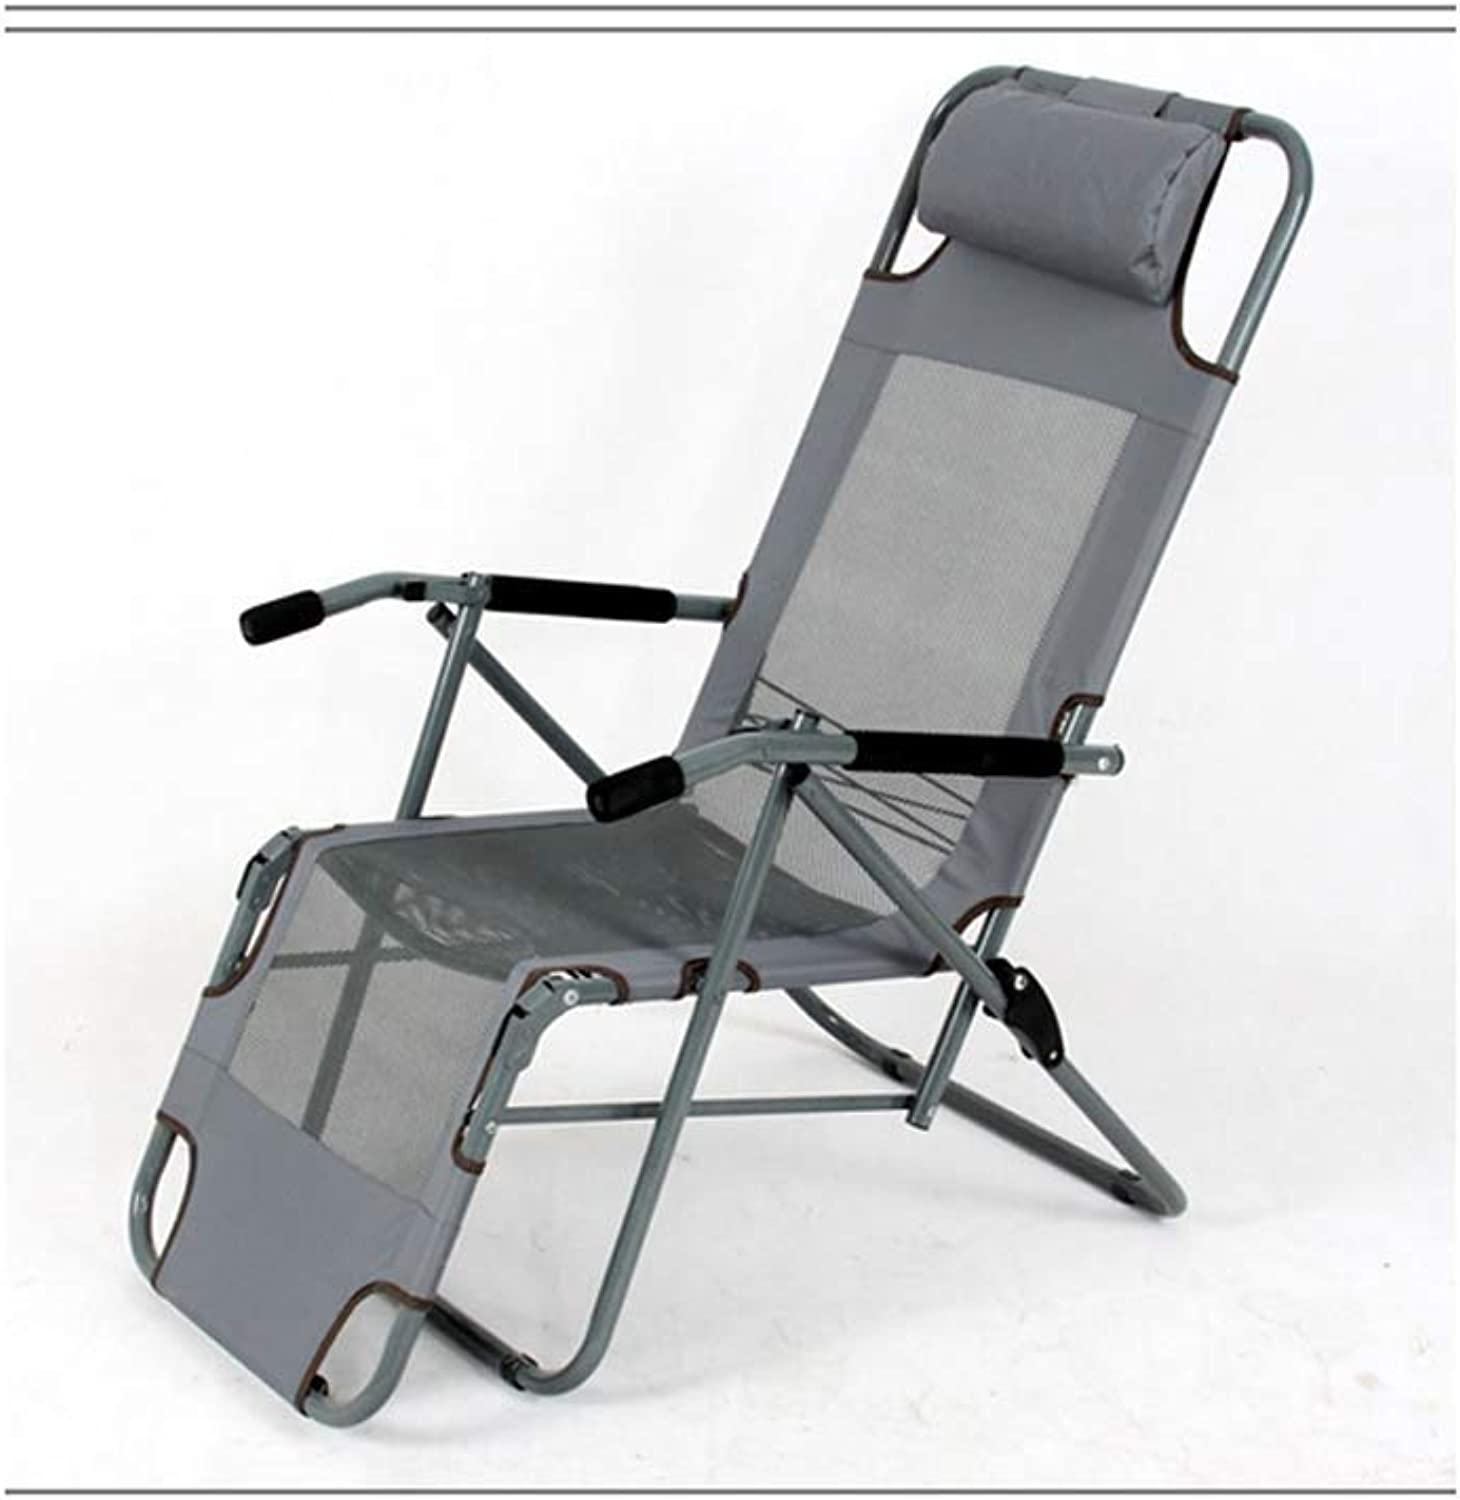 Outdoor Products Portable Folding Chairs Folding Stool Outdoor Family Indoor Playground Fishing Barbecue Camping Painting Hiking Recreation Beach Beach Chair